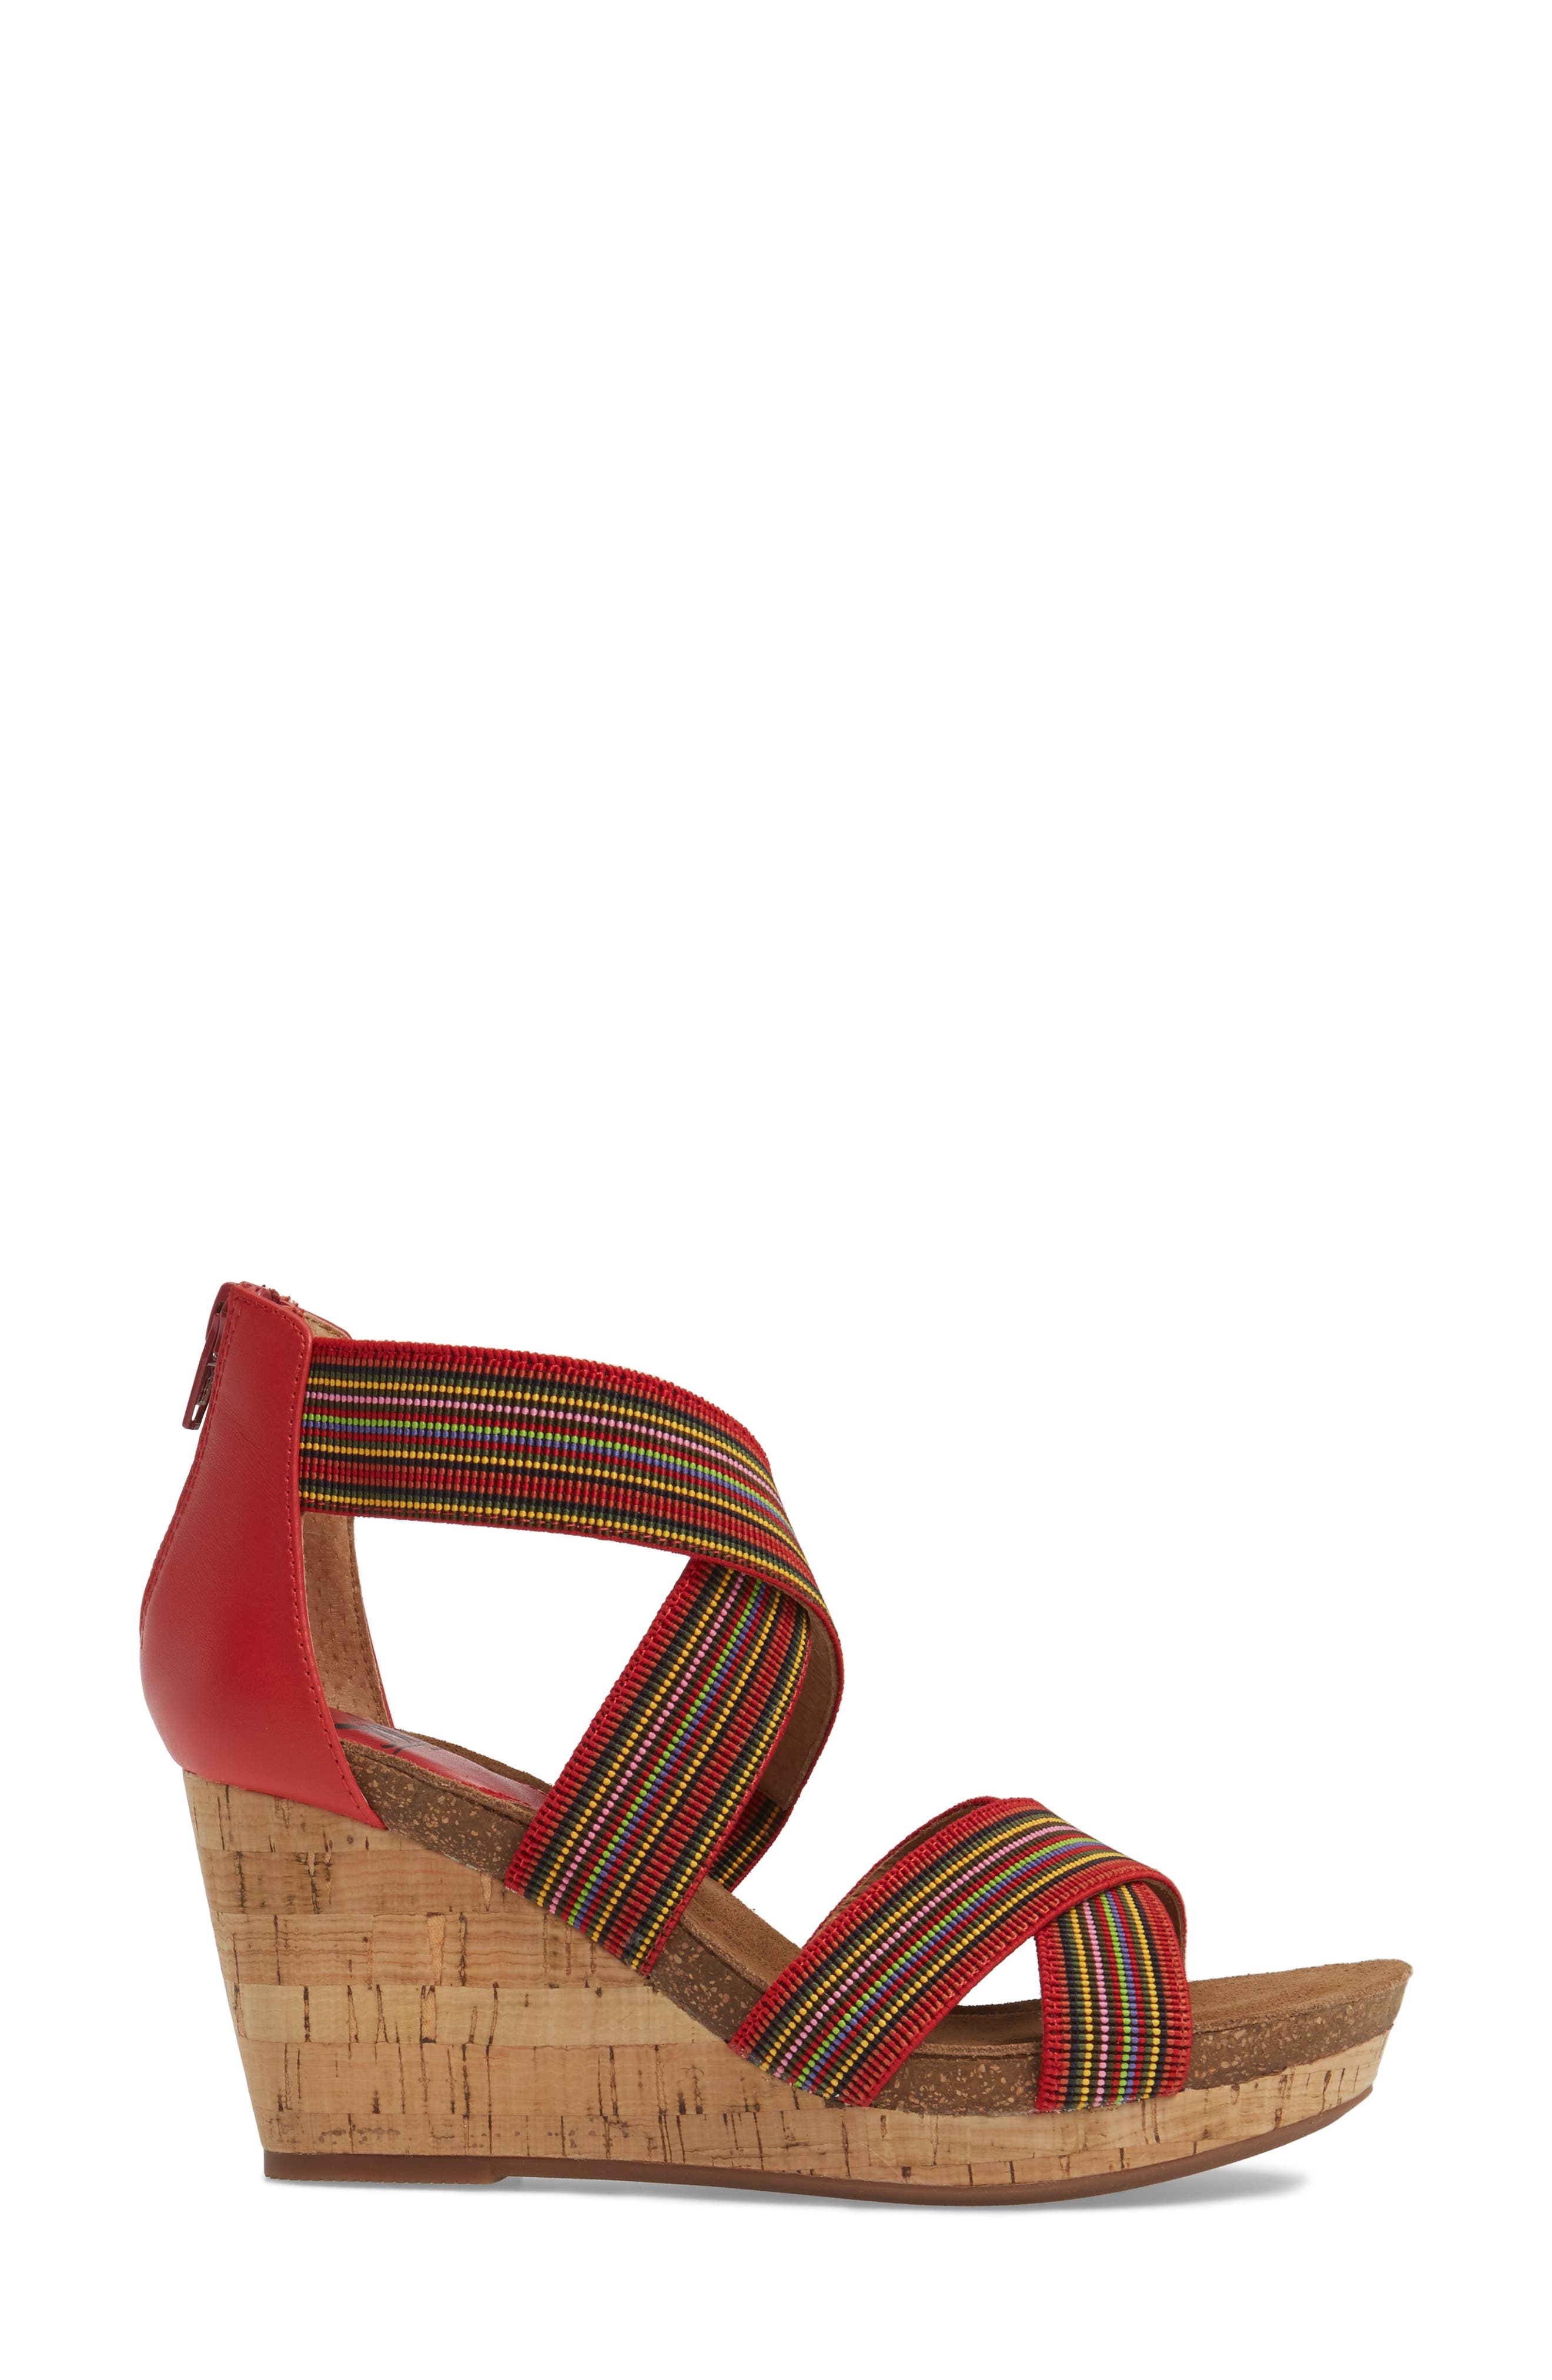 Cary Cross Strap Wedge Sandal,                             Alternate thumbnail 9, color,